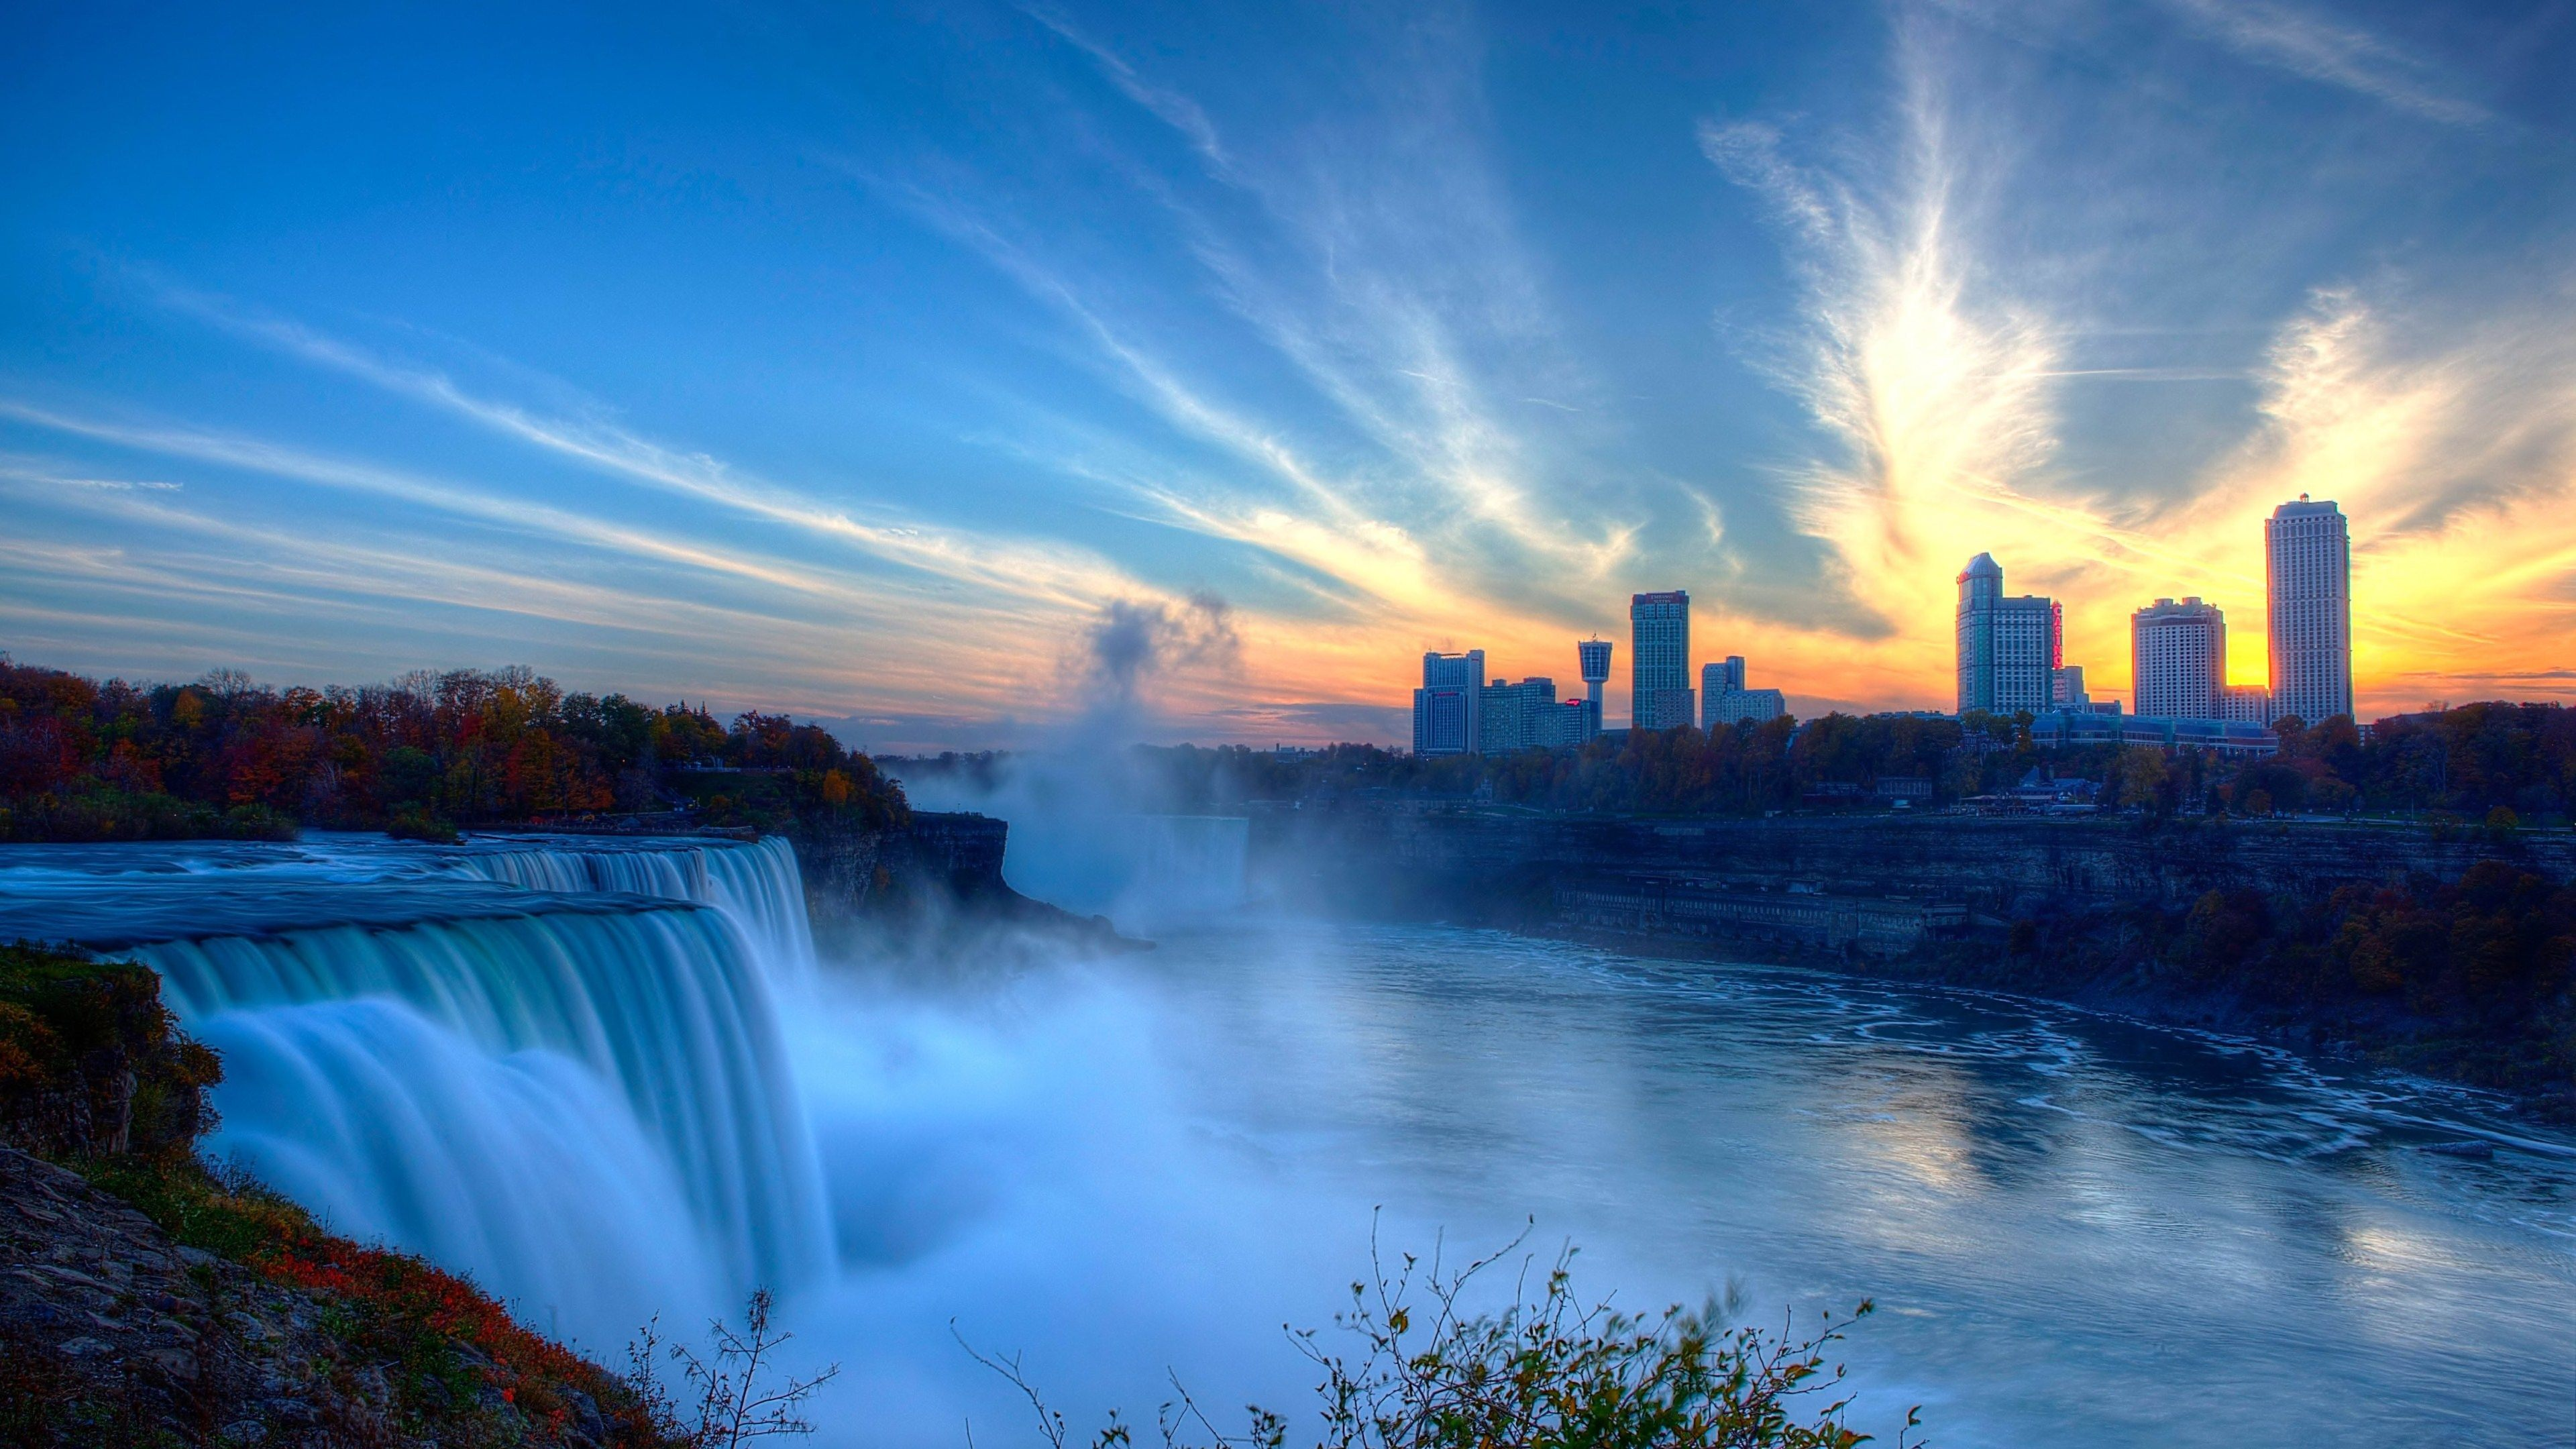 Niagara Falls Hd 1080p Wallpapers Waterfall Wallpaper High Quality Pixelstalk Net